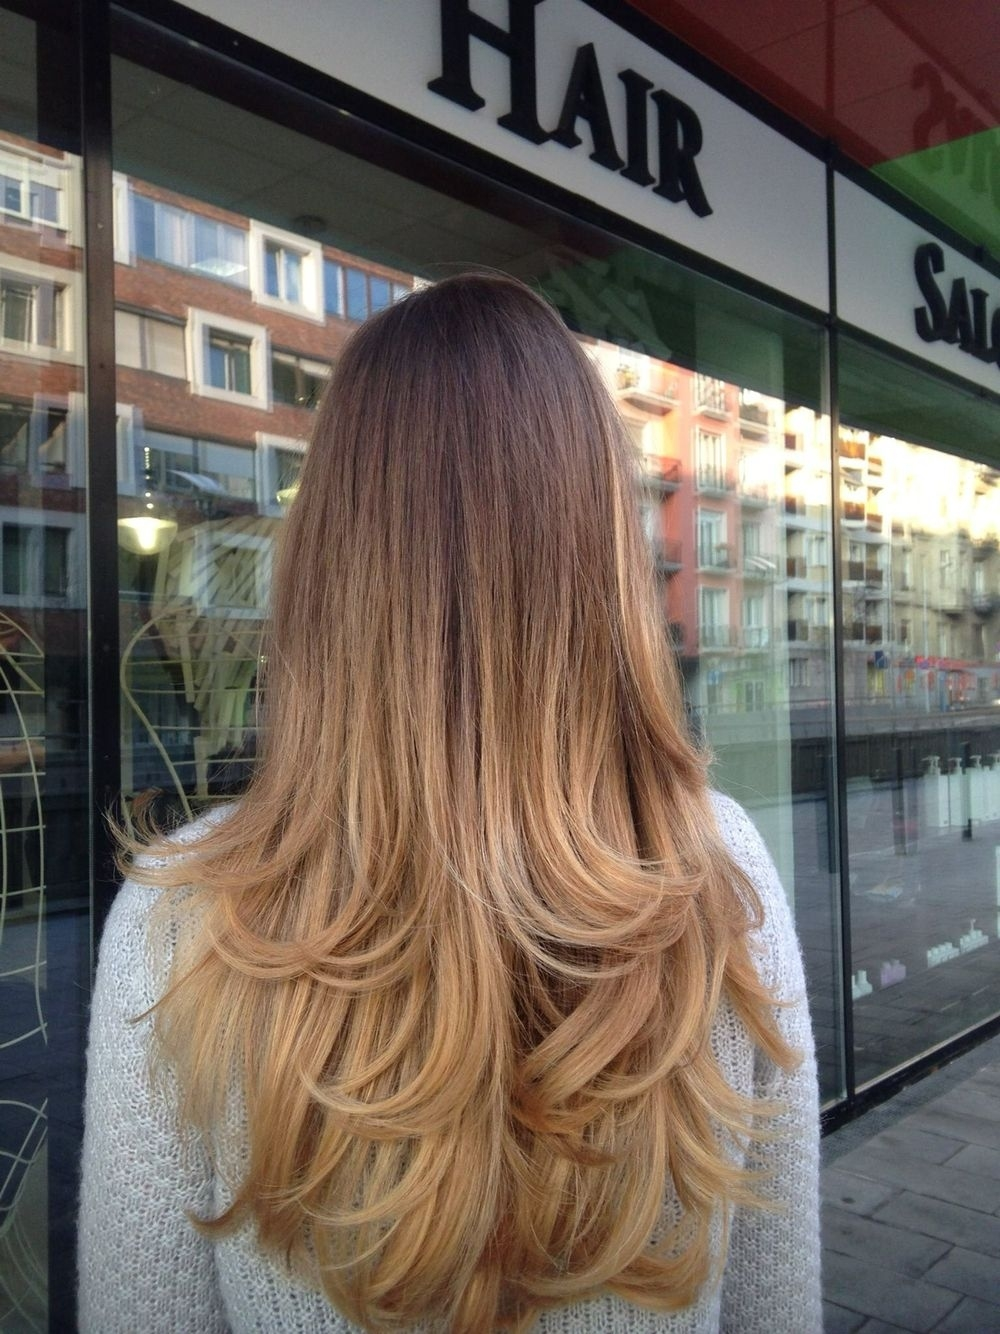 White Hair Salon, Budapest   Hairstyle   Pinterest   White Hair And throughout Haircut Salon And More Budapest